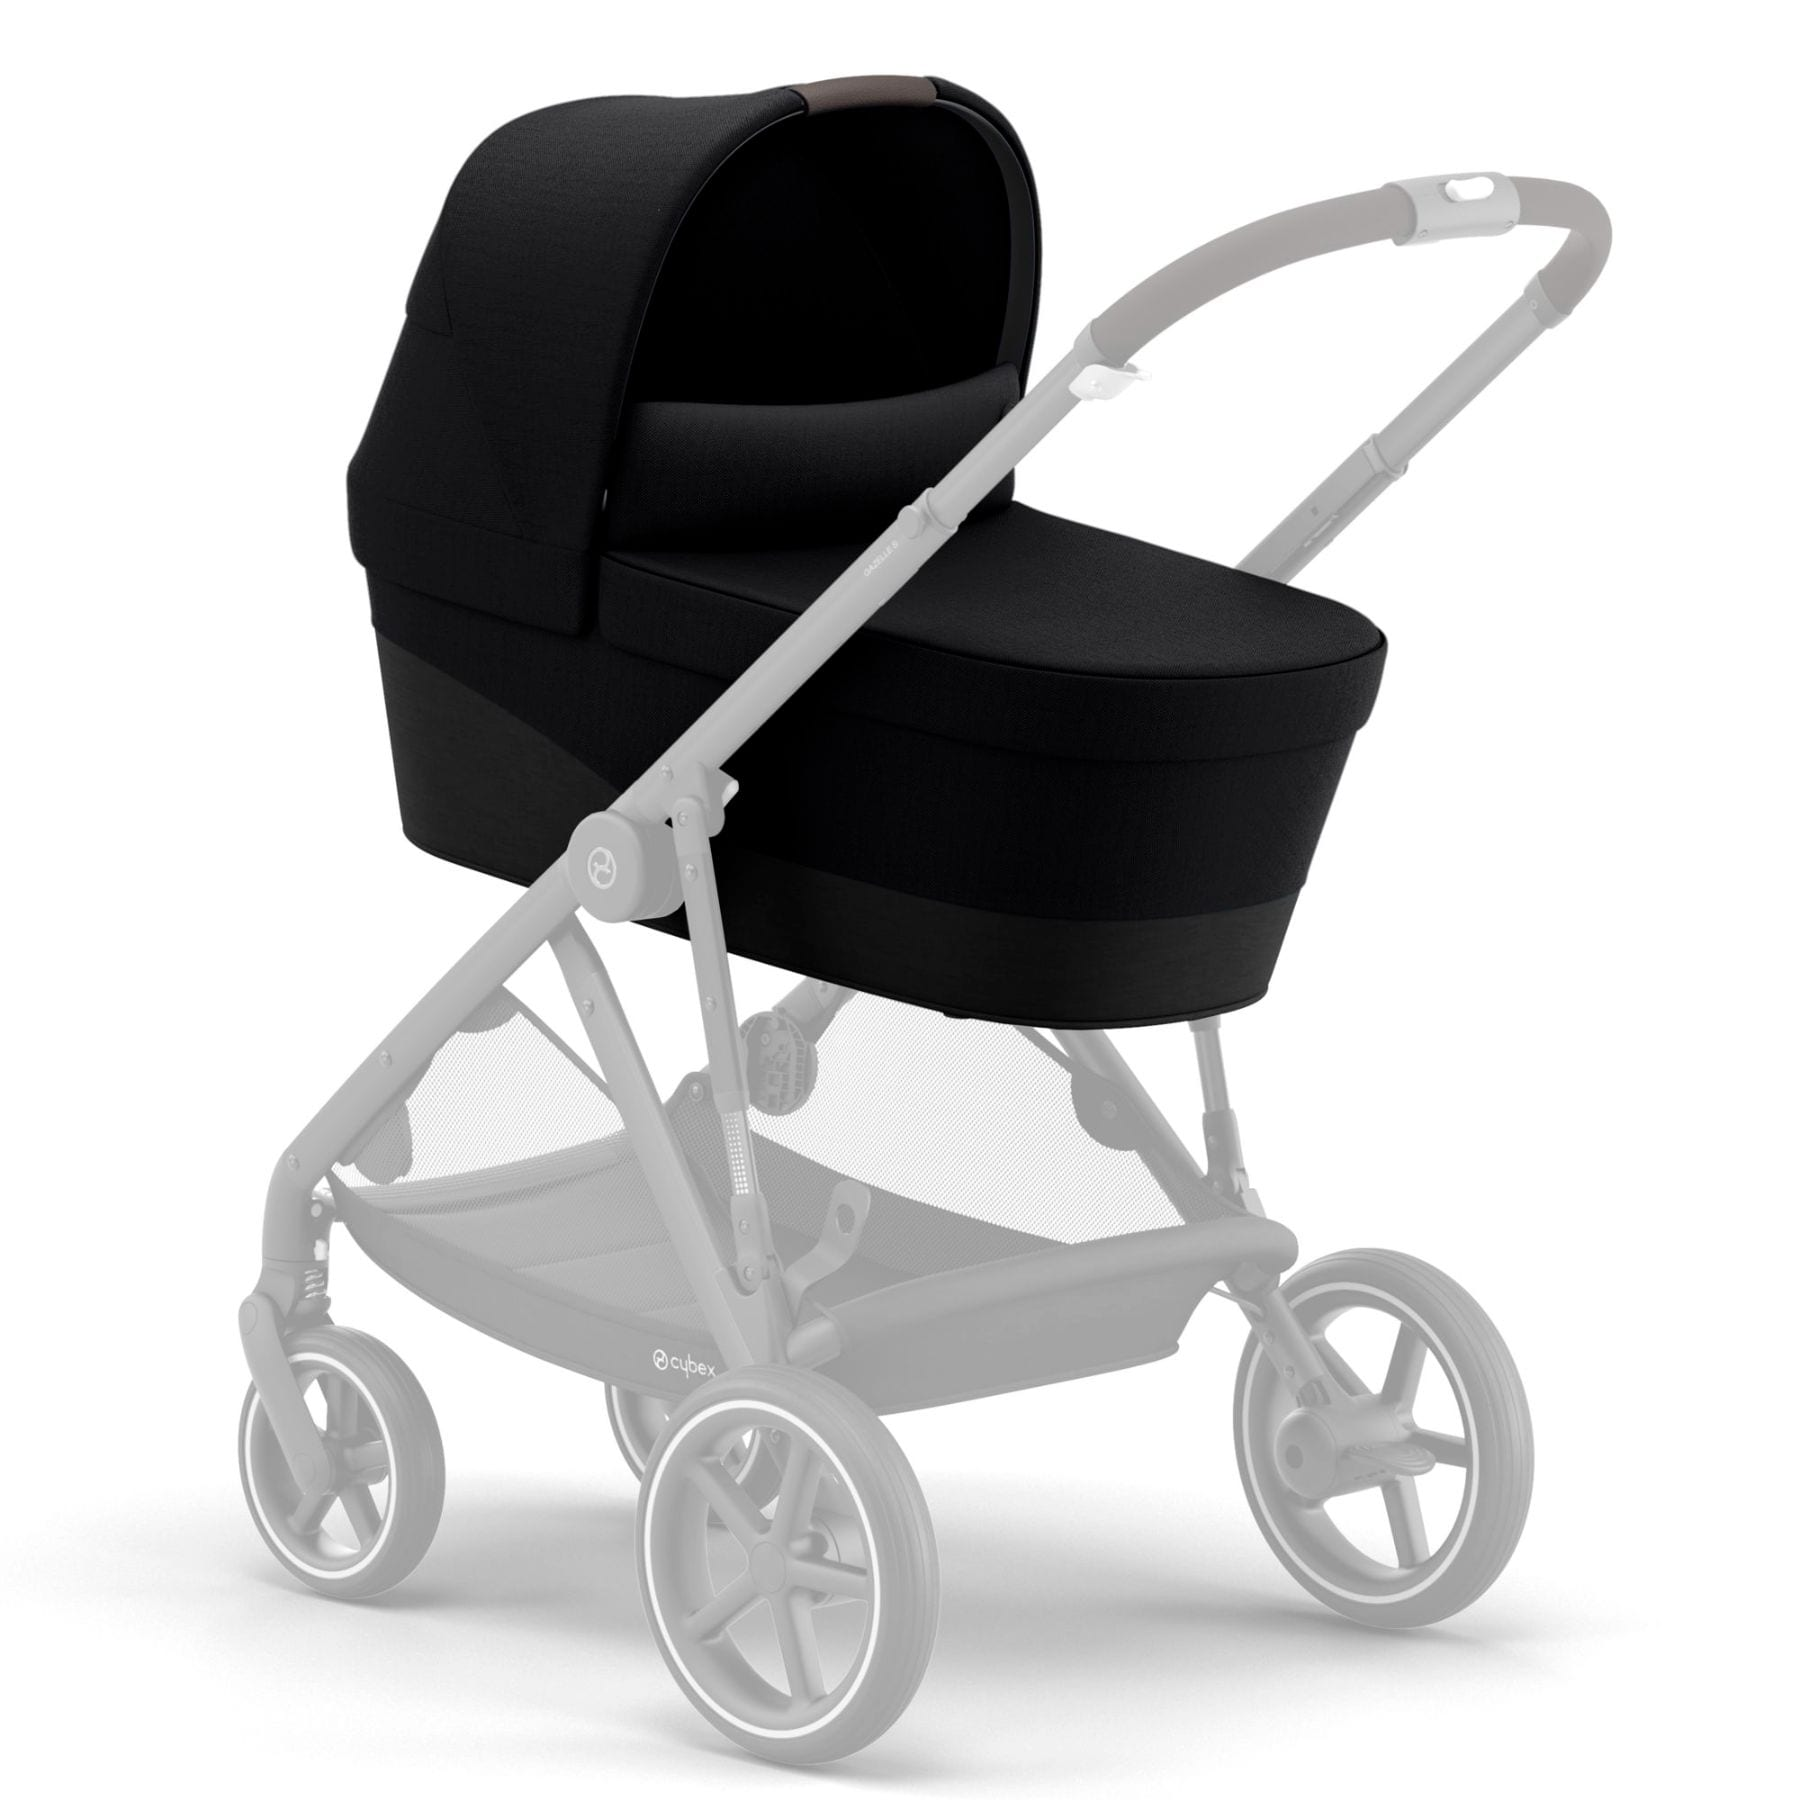 Cybex Gazelle S Cot - Deep Black